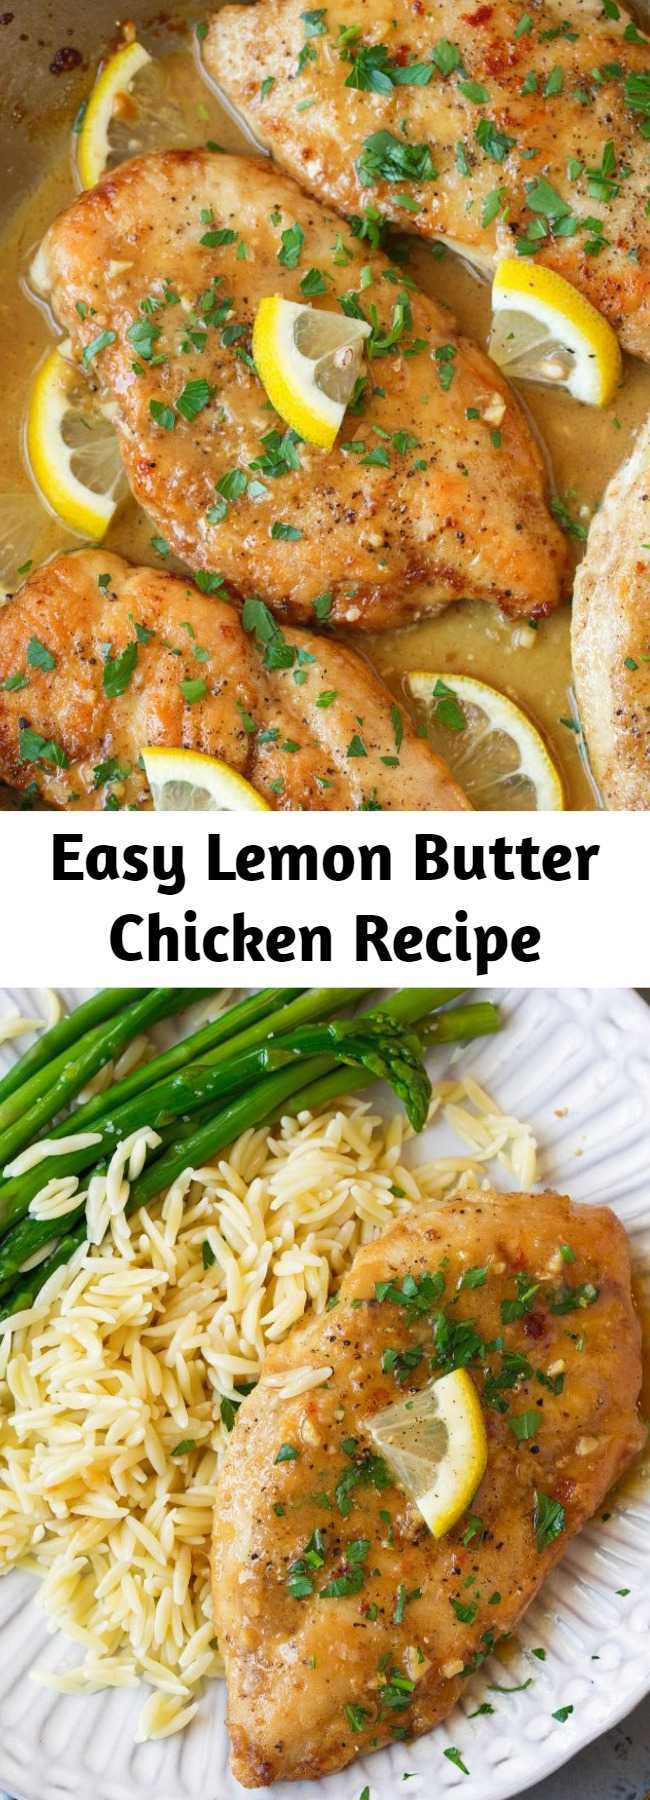 Easy Lemon Butter Chicken Recipe - The easiest yet tastiest chicken recipe! Pan seared chicken breasts are coated with a bright, tangy and rich lemon butter sauce that will leave you craving more! Perfect recipe for busy weeknights. Serve with orzo and asparagus to complete the meal. #lemon #chicken #chickenbreasts #dinnerideas #recipe